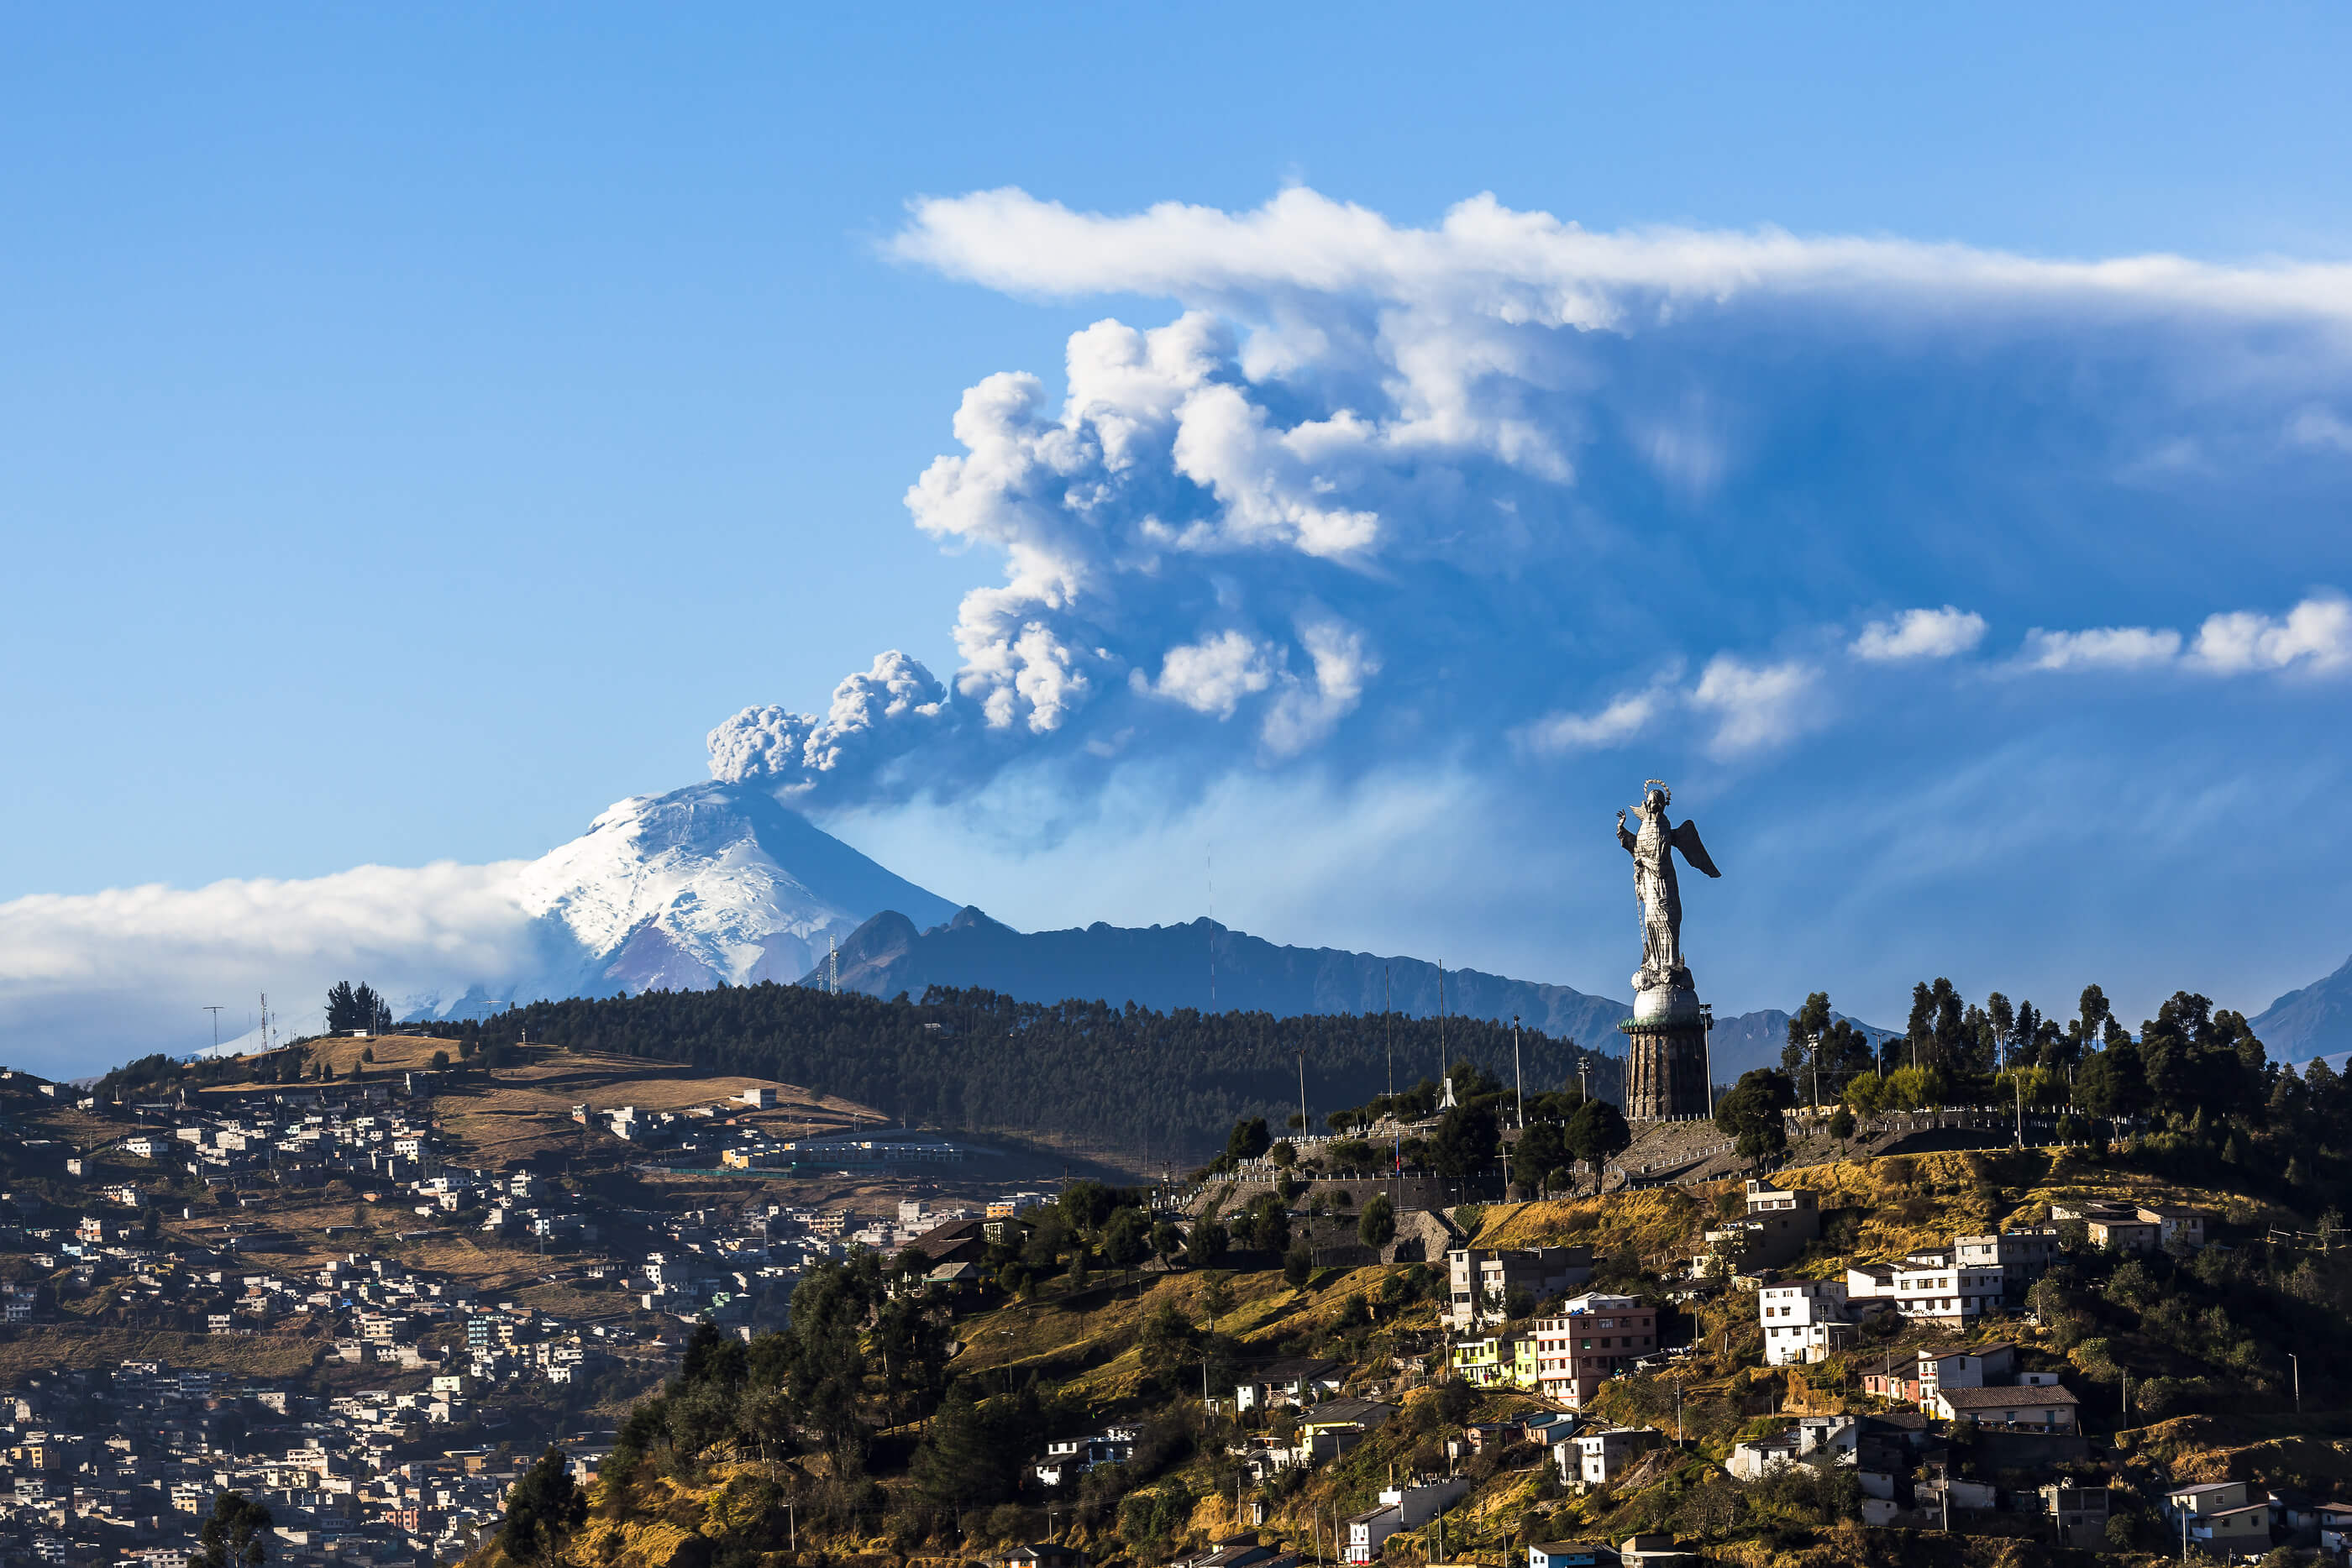 Cotopaxi volcano eruption and Panecillo's Madona seen from Quito Ecuador